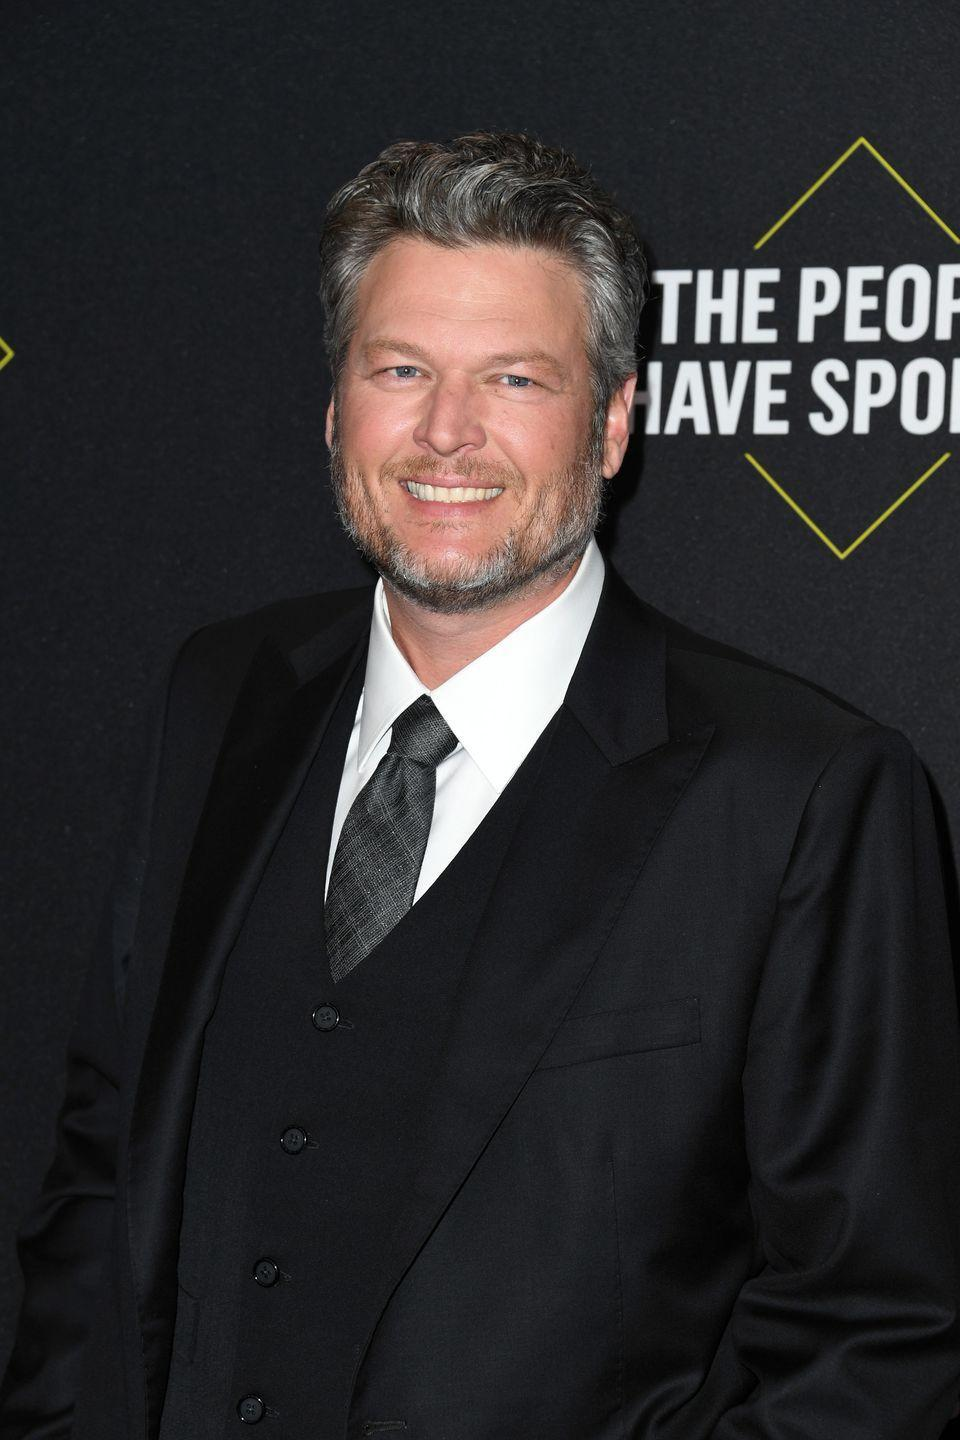 """<p>Country music fans certainly know how to pick a winner. Long before he filled one of the coach chairs on <em>The Voice</em>, Blake Shelton dropped the song """"Austin"""" in 2001. It topped the Billboard country chart and immediately made him one of the top dogs in the genre.</p><p><a class=""""link rapid-noclick-resp"""" href=""""https://www.amazon.com/Austin/dp/B00492AOB0/ref=sr_1_1?tag=syn-yahoo-20&ascsubtag=%5Bartid%7C10063.g.30535280%5Bsrc%7Cyahoo-us"""" rel=""""nofollow noopener"""" target=""""_blank"""" data-ylk=""""slk:BUY NOW"""">BUY NOW</a></p>"""